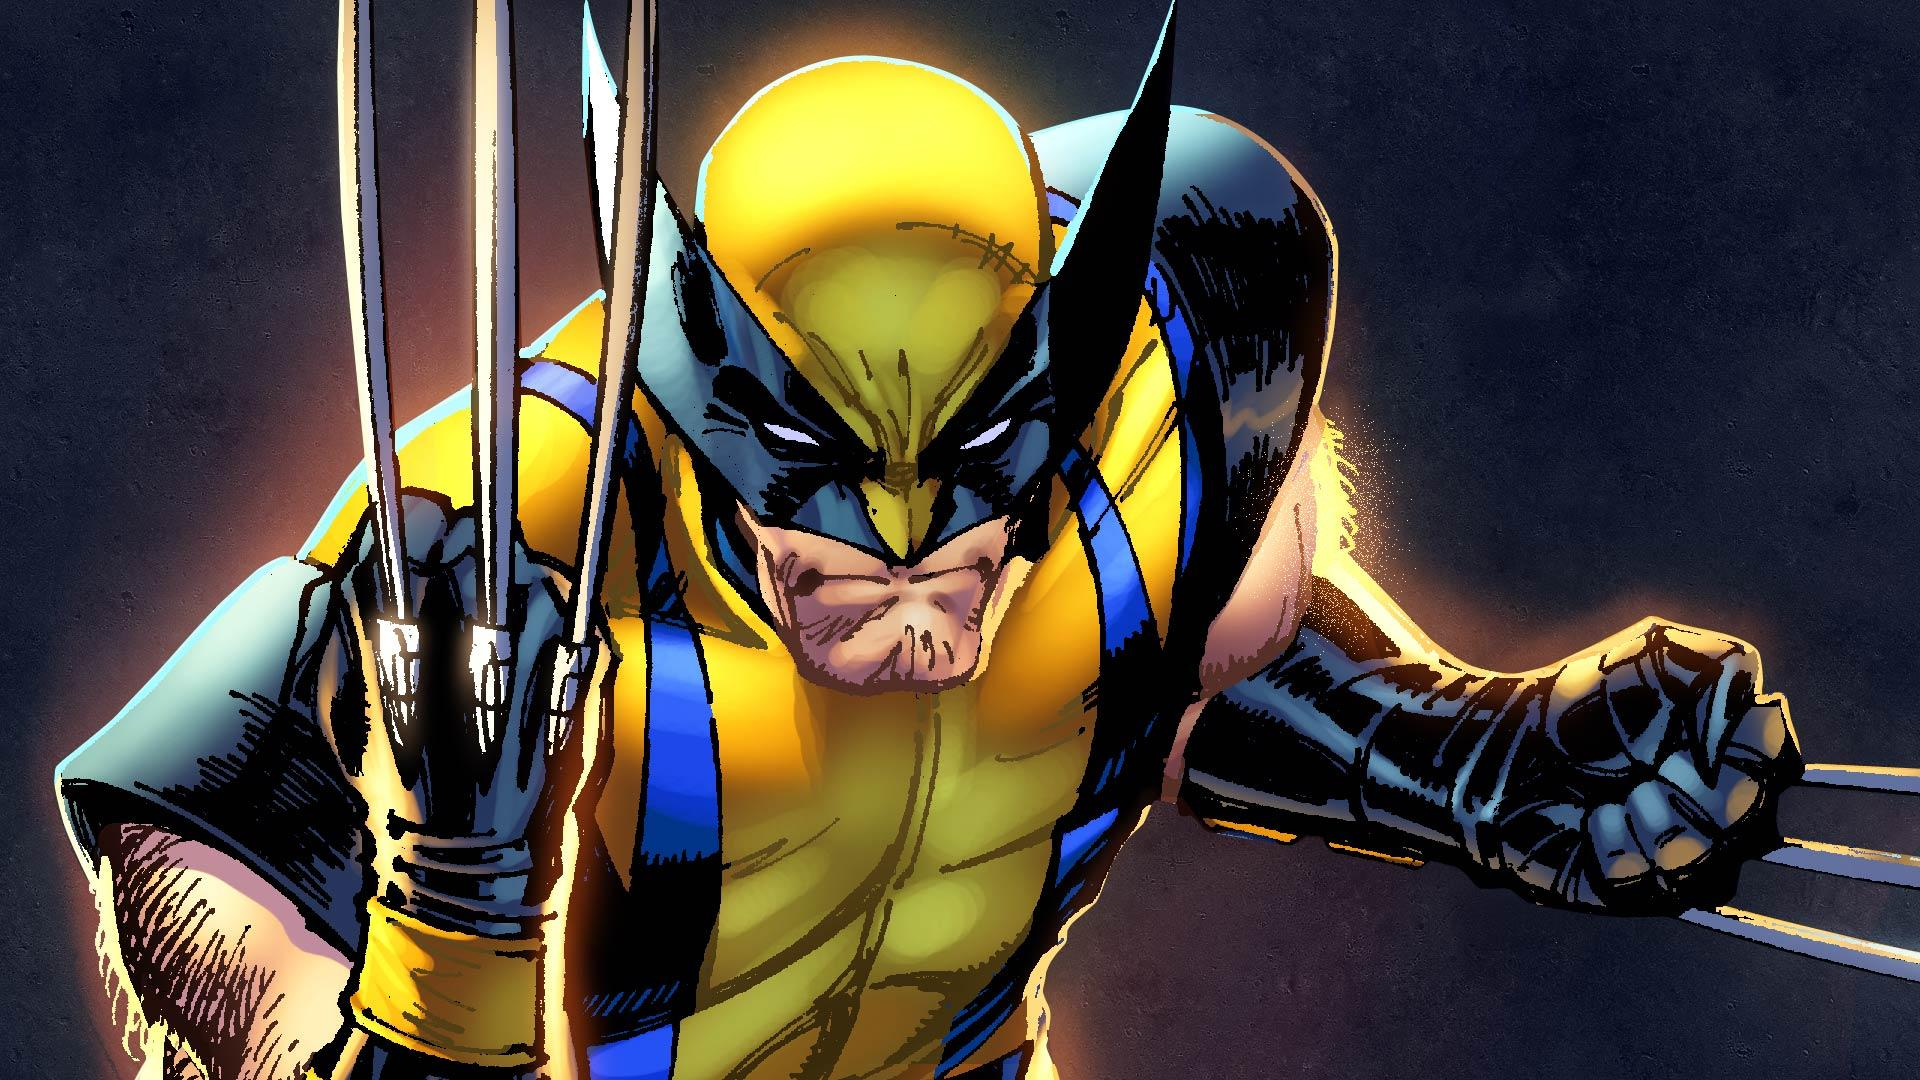 Wolverine hd wallpapers wallpaper cave 322 wolverine hd wallpapers backgrounds wallpaper abyss voltagebd Images